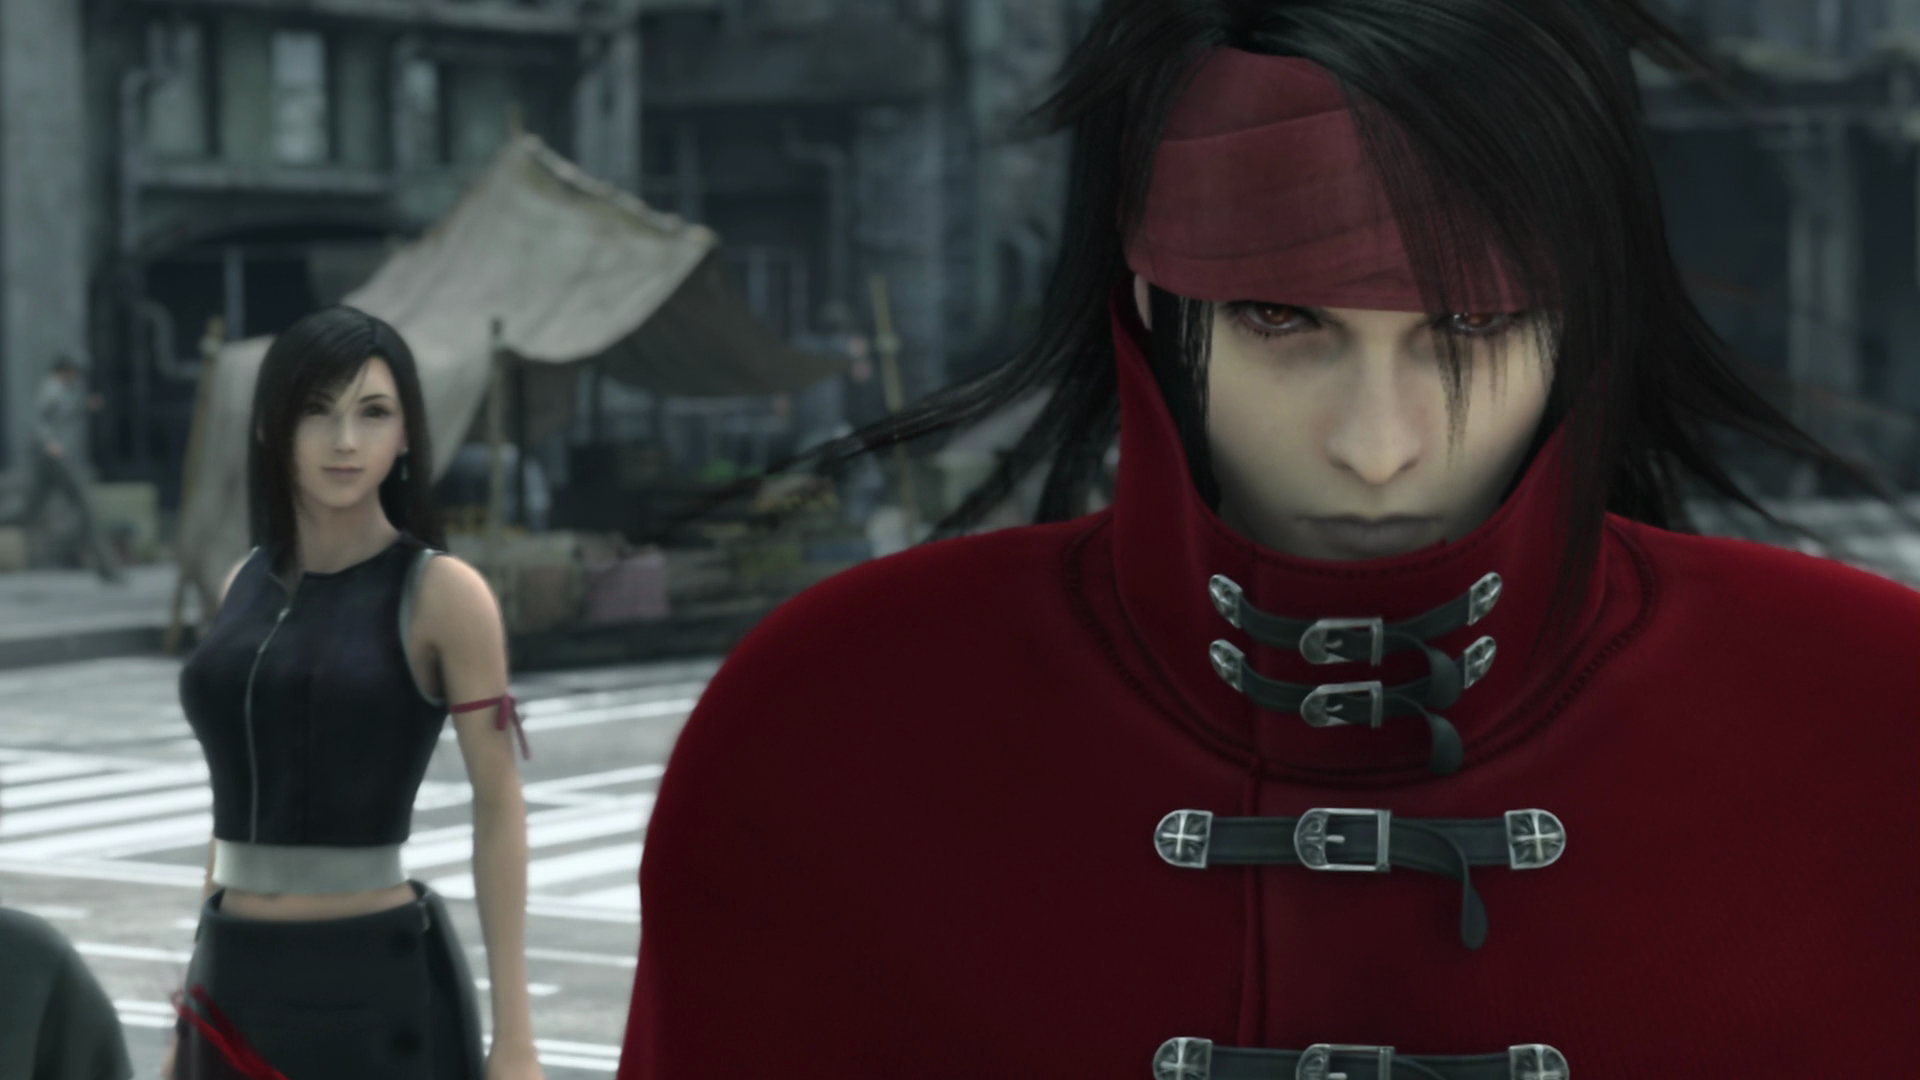 final fantasy vii advent children, vincent, tifa lockheart - free